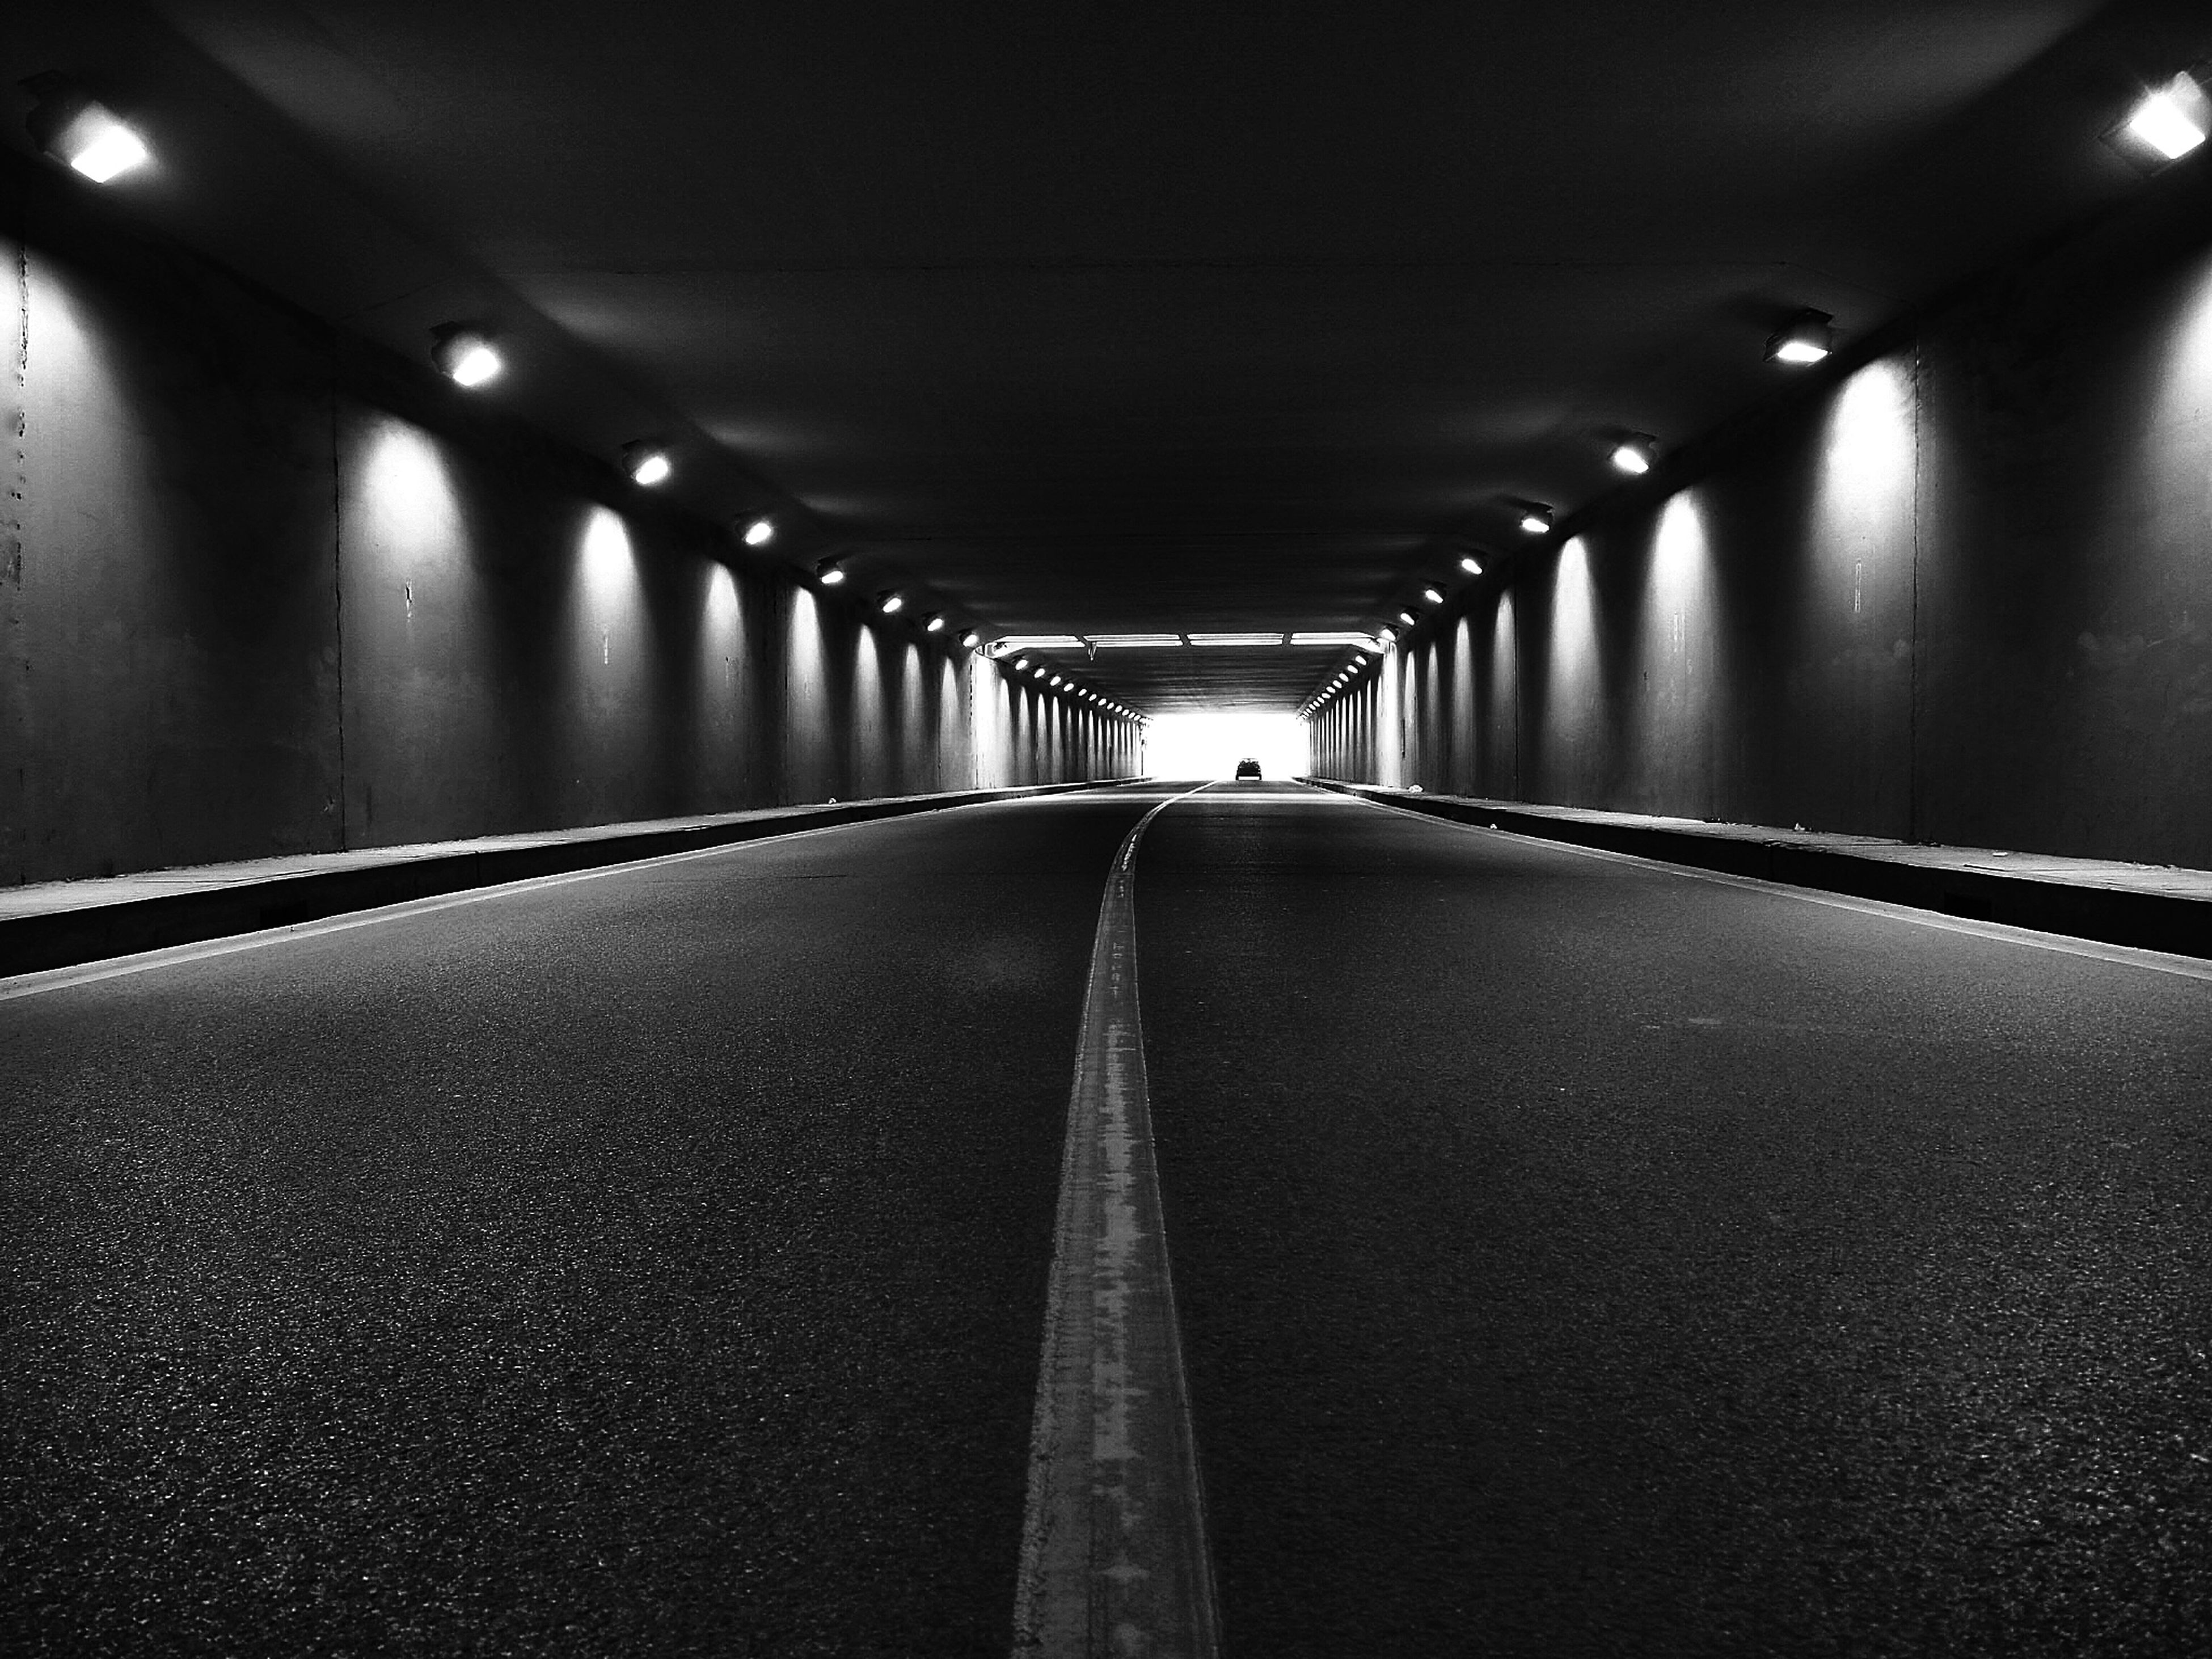 the way forward, diminishing perspective, indoors, illuminated, vanishing point, lighting equipment, ceiling, empty, tunnel, transportation, long, in a row, corridor, absence, surface level, architecture, built structure, night, light - natural phenomenon, no people